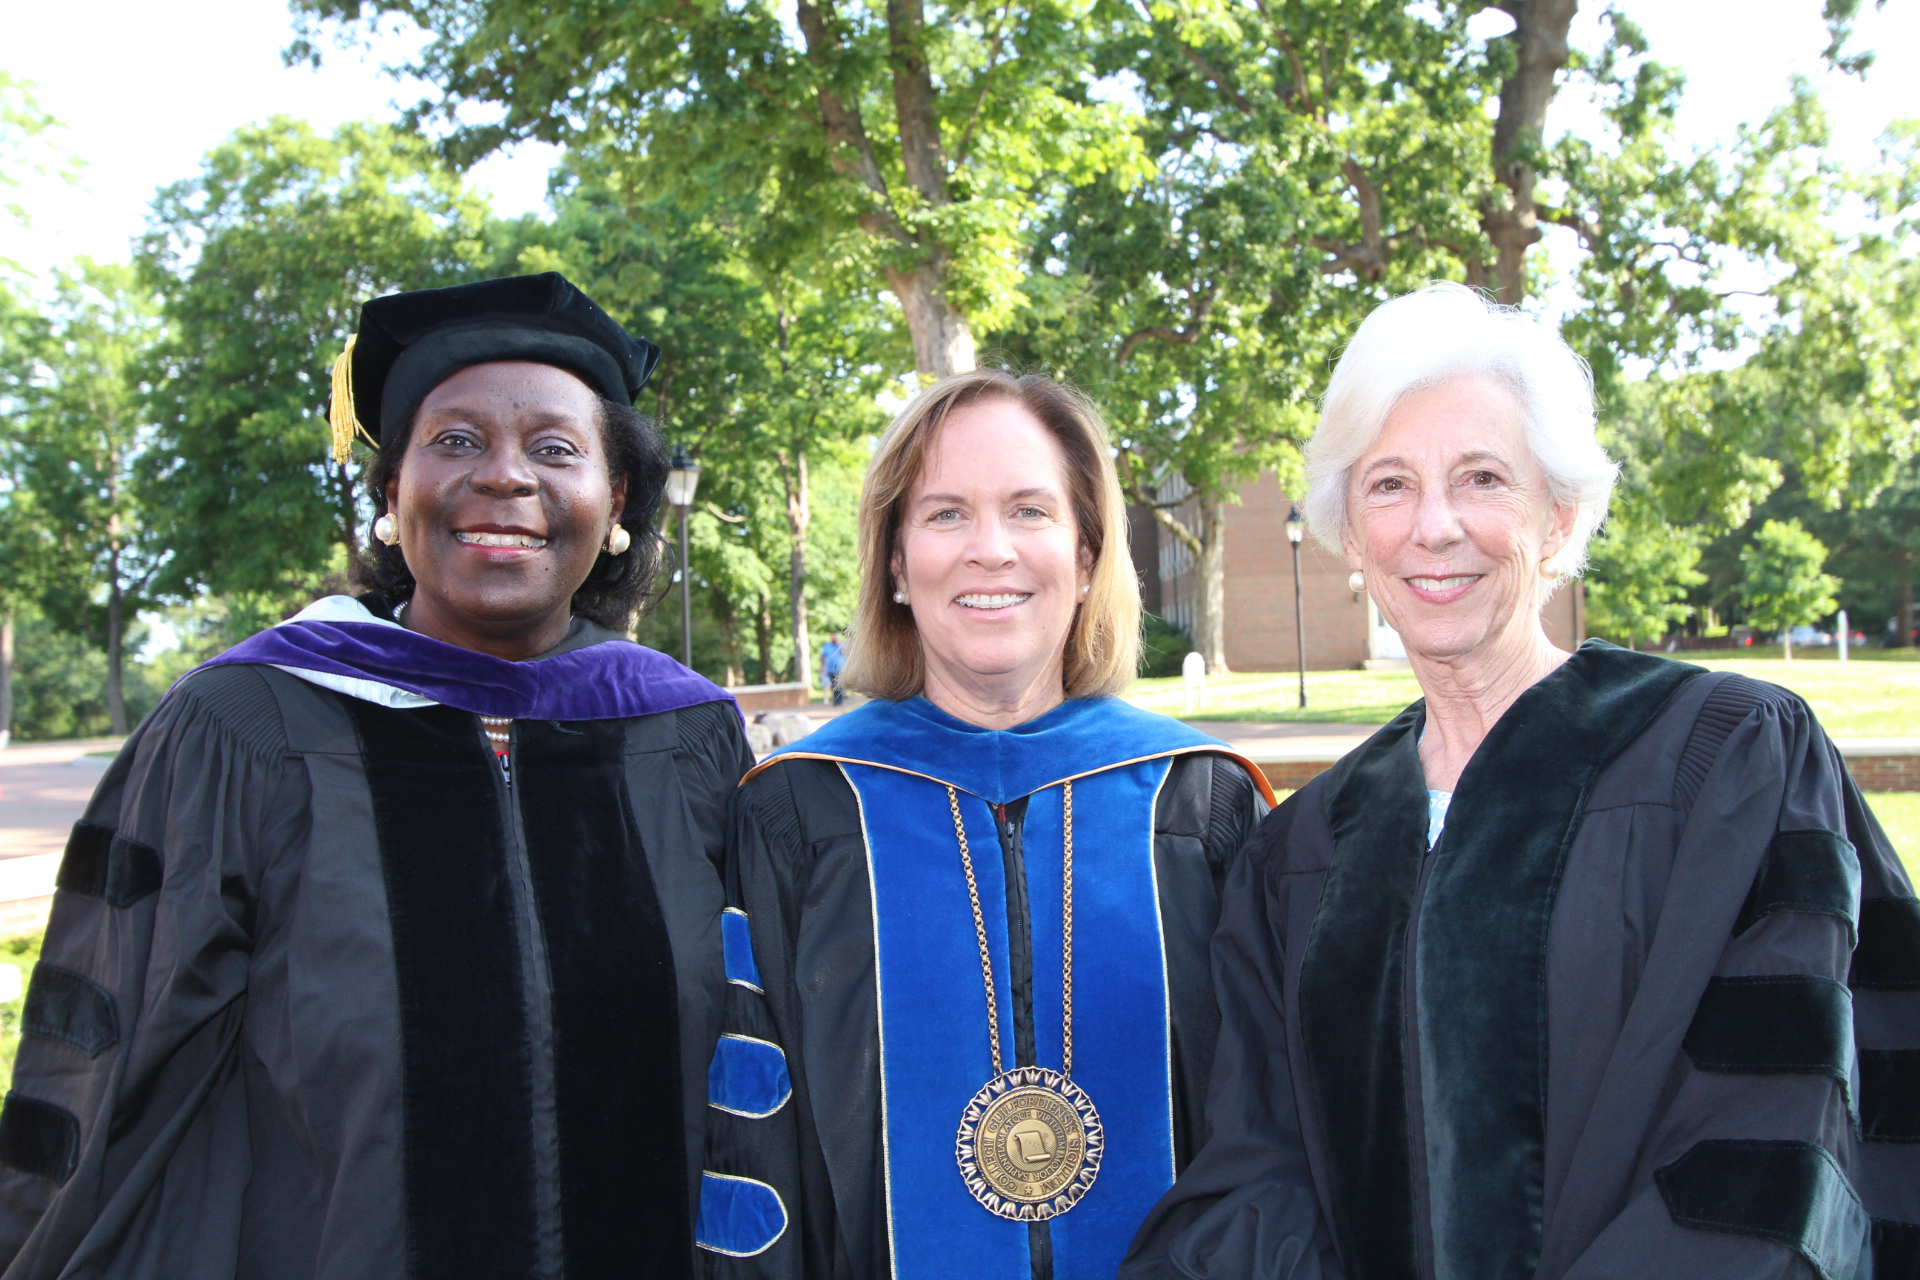 President Jane Fernandes with Patricia Timmons-Goodson and Adair Phifer Armfield.